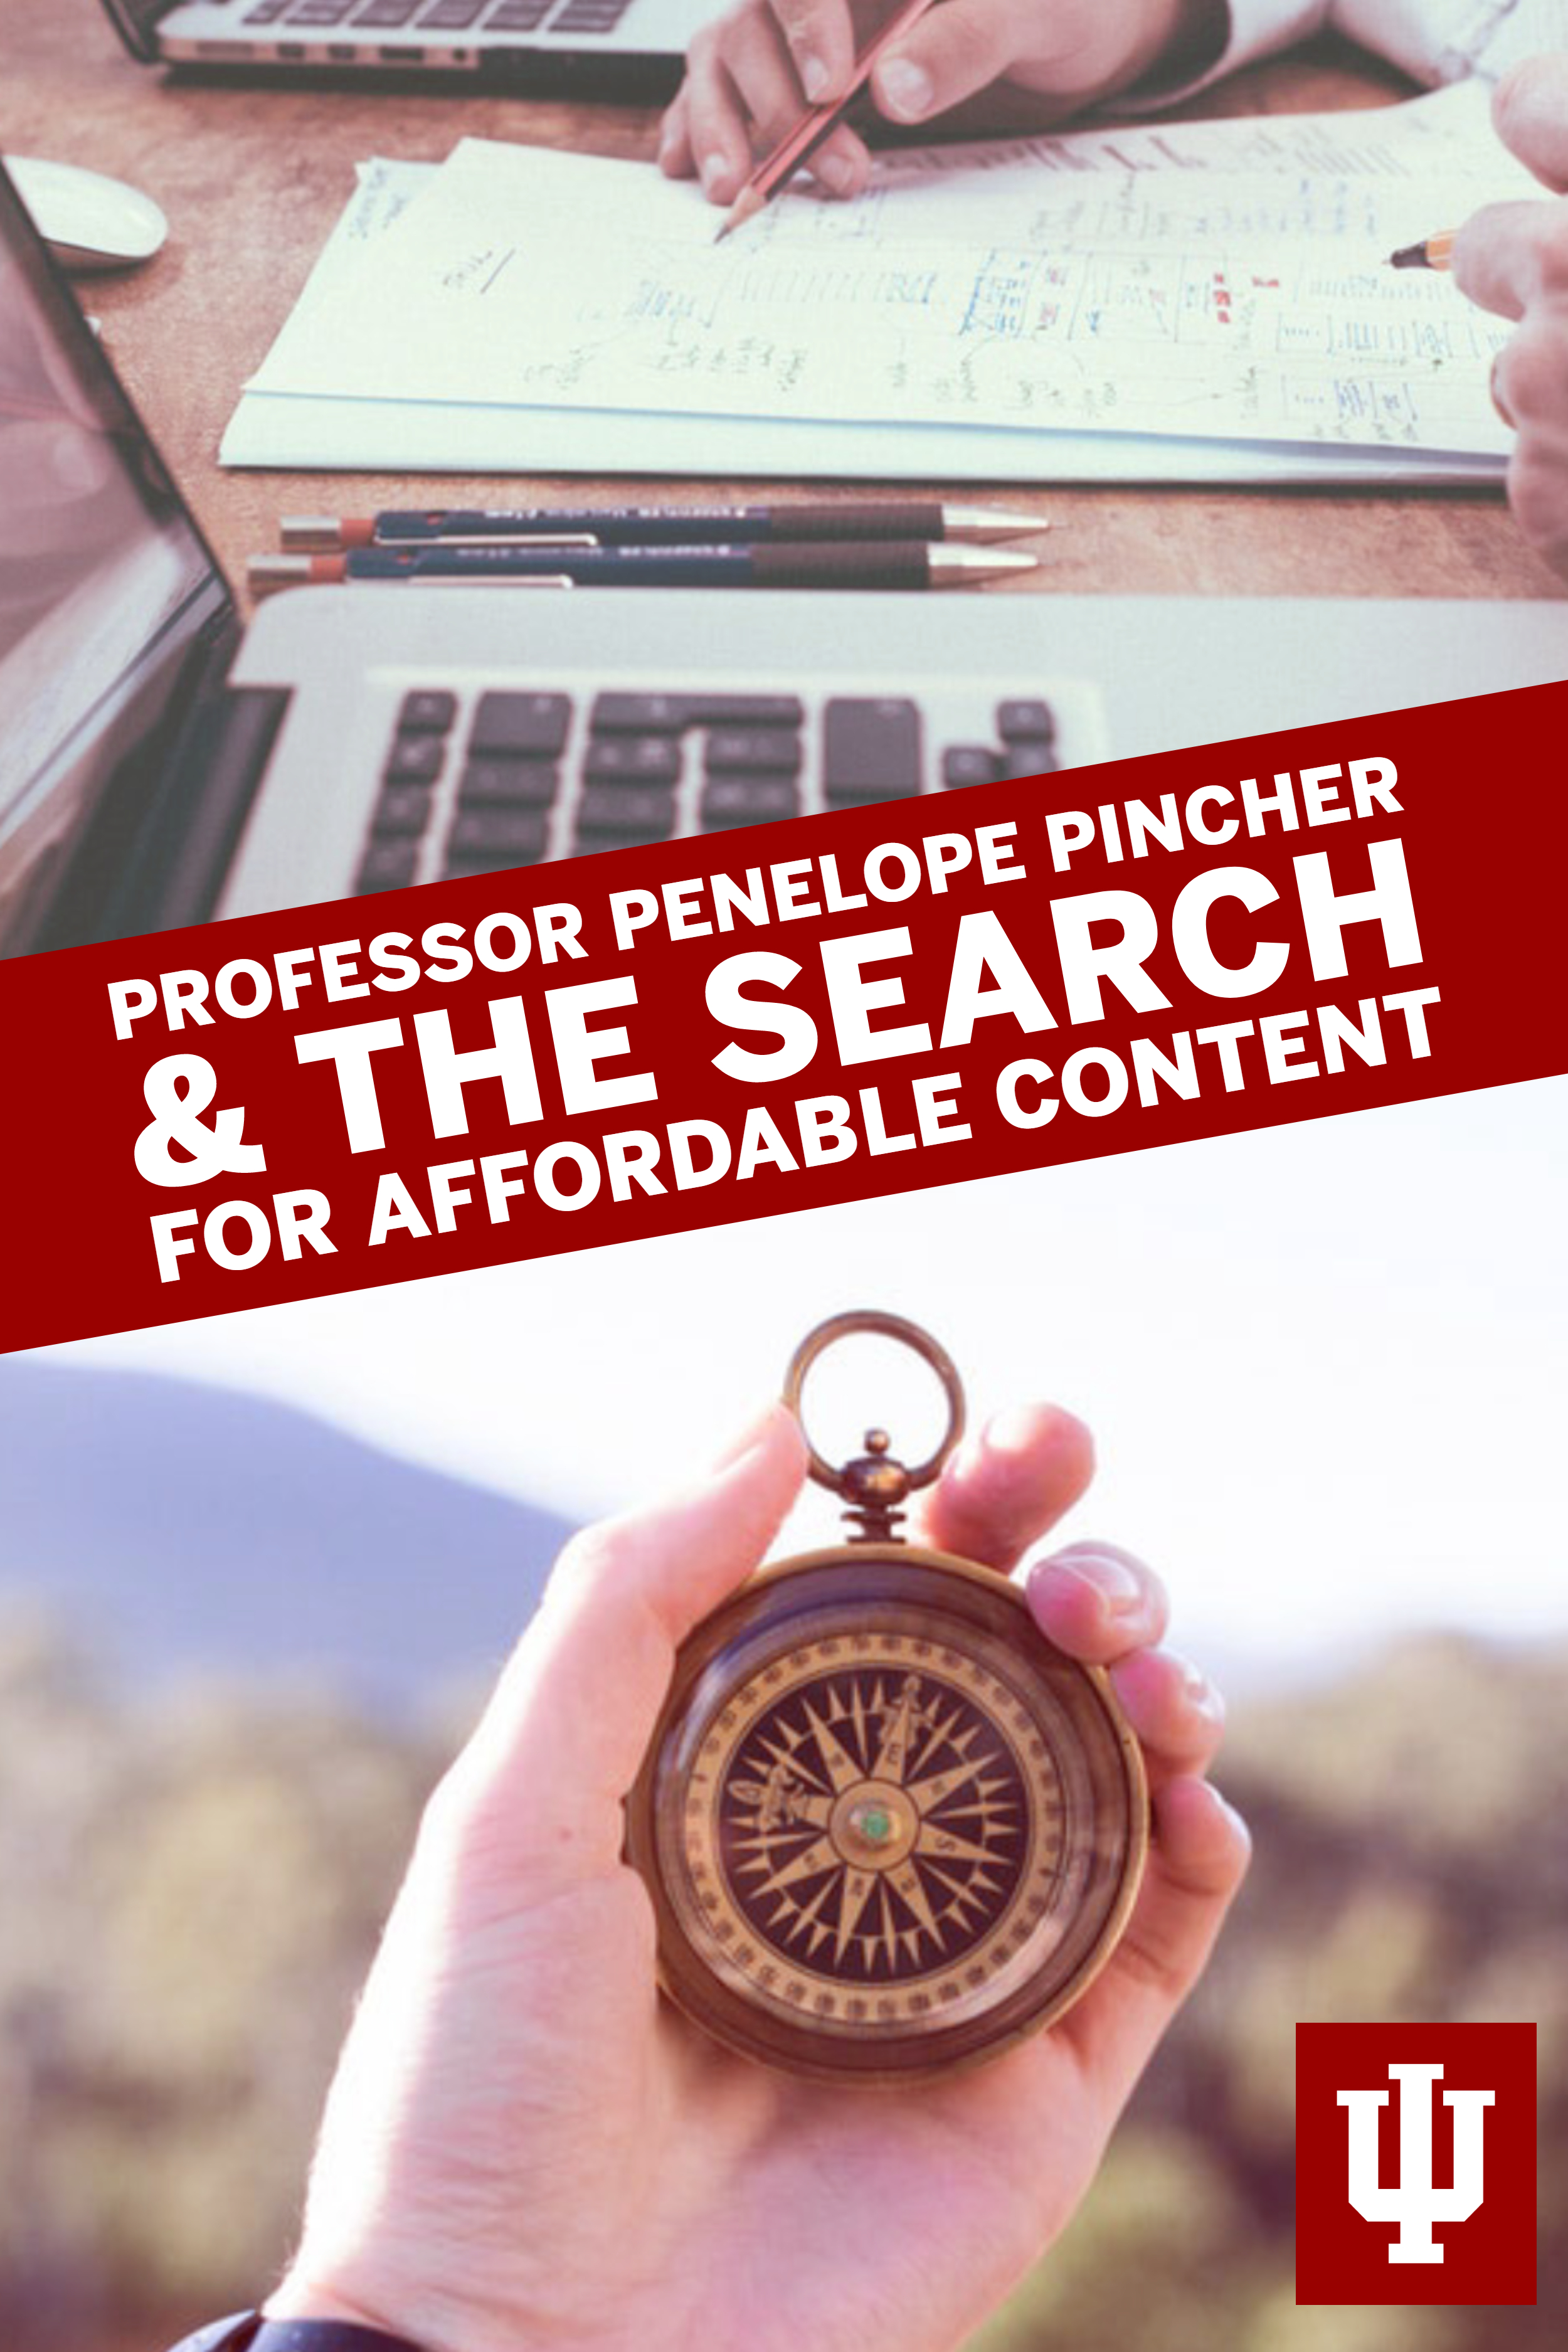 click here to go to the Professor Penelope Pincher & the Search for Affordable Content Pressbook